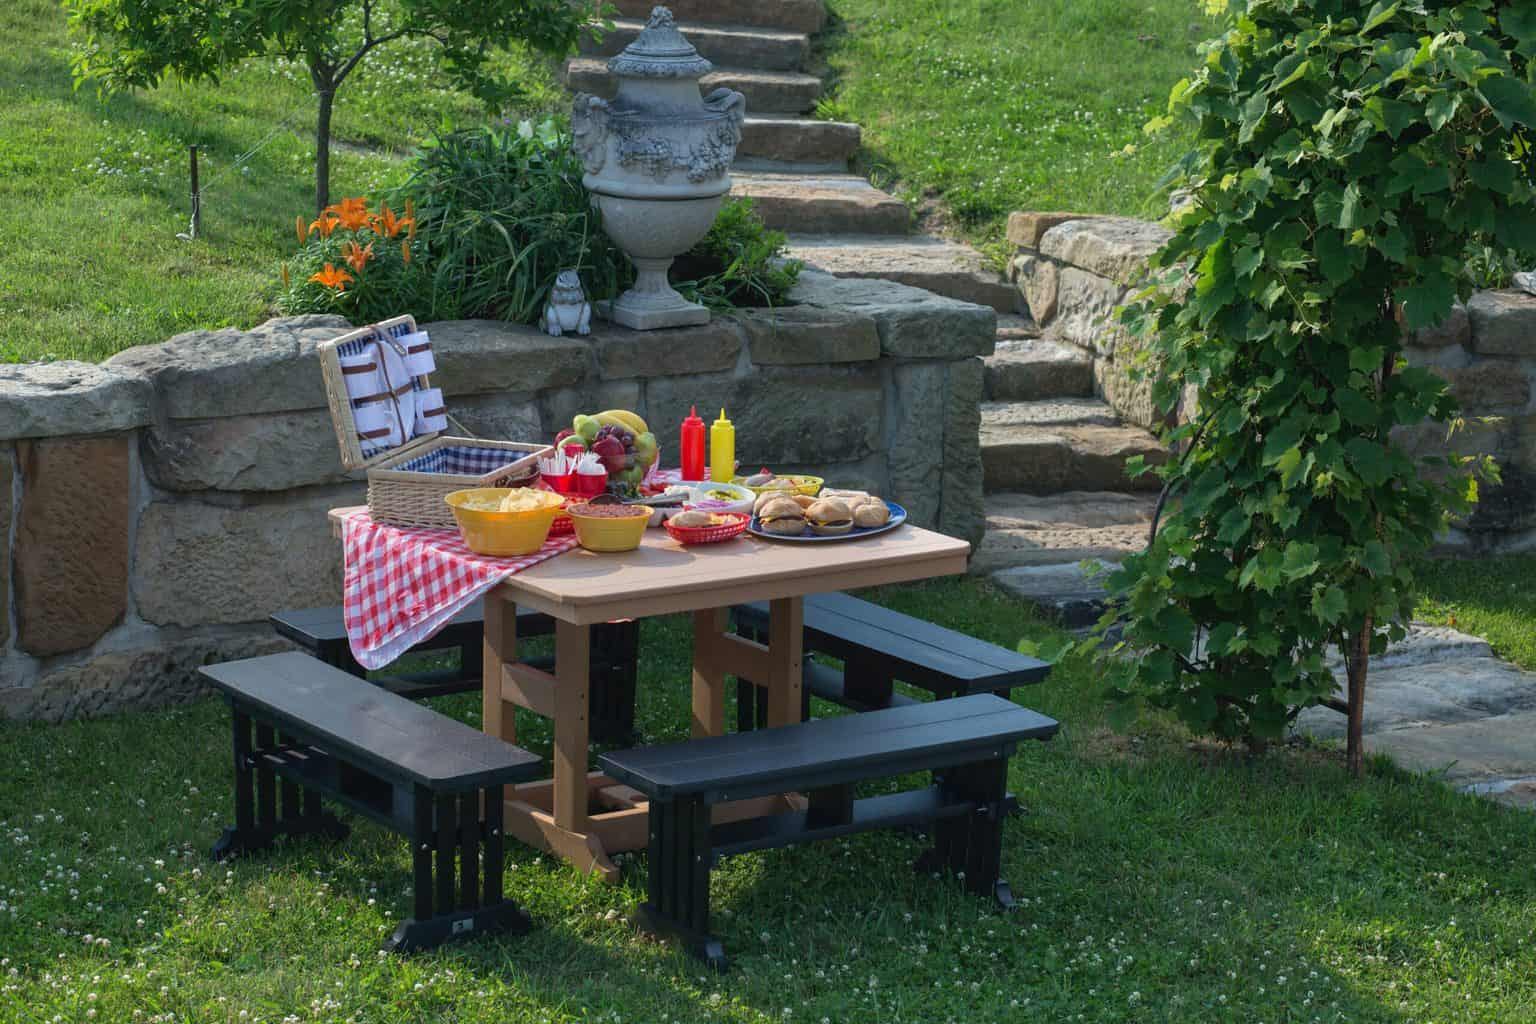 A picnic table with food